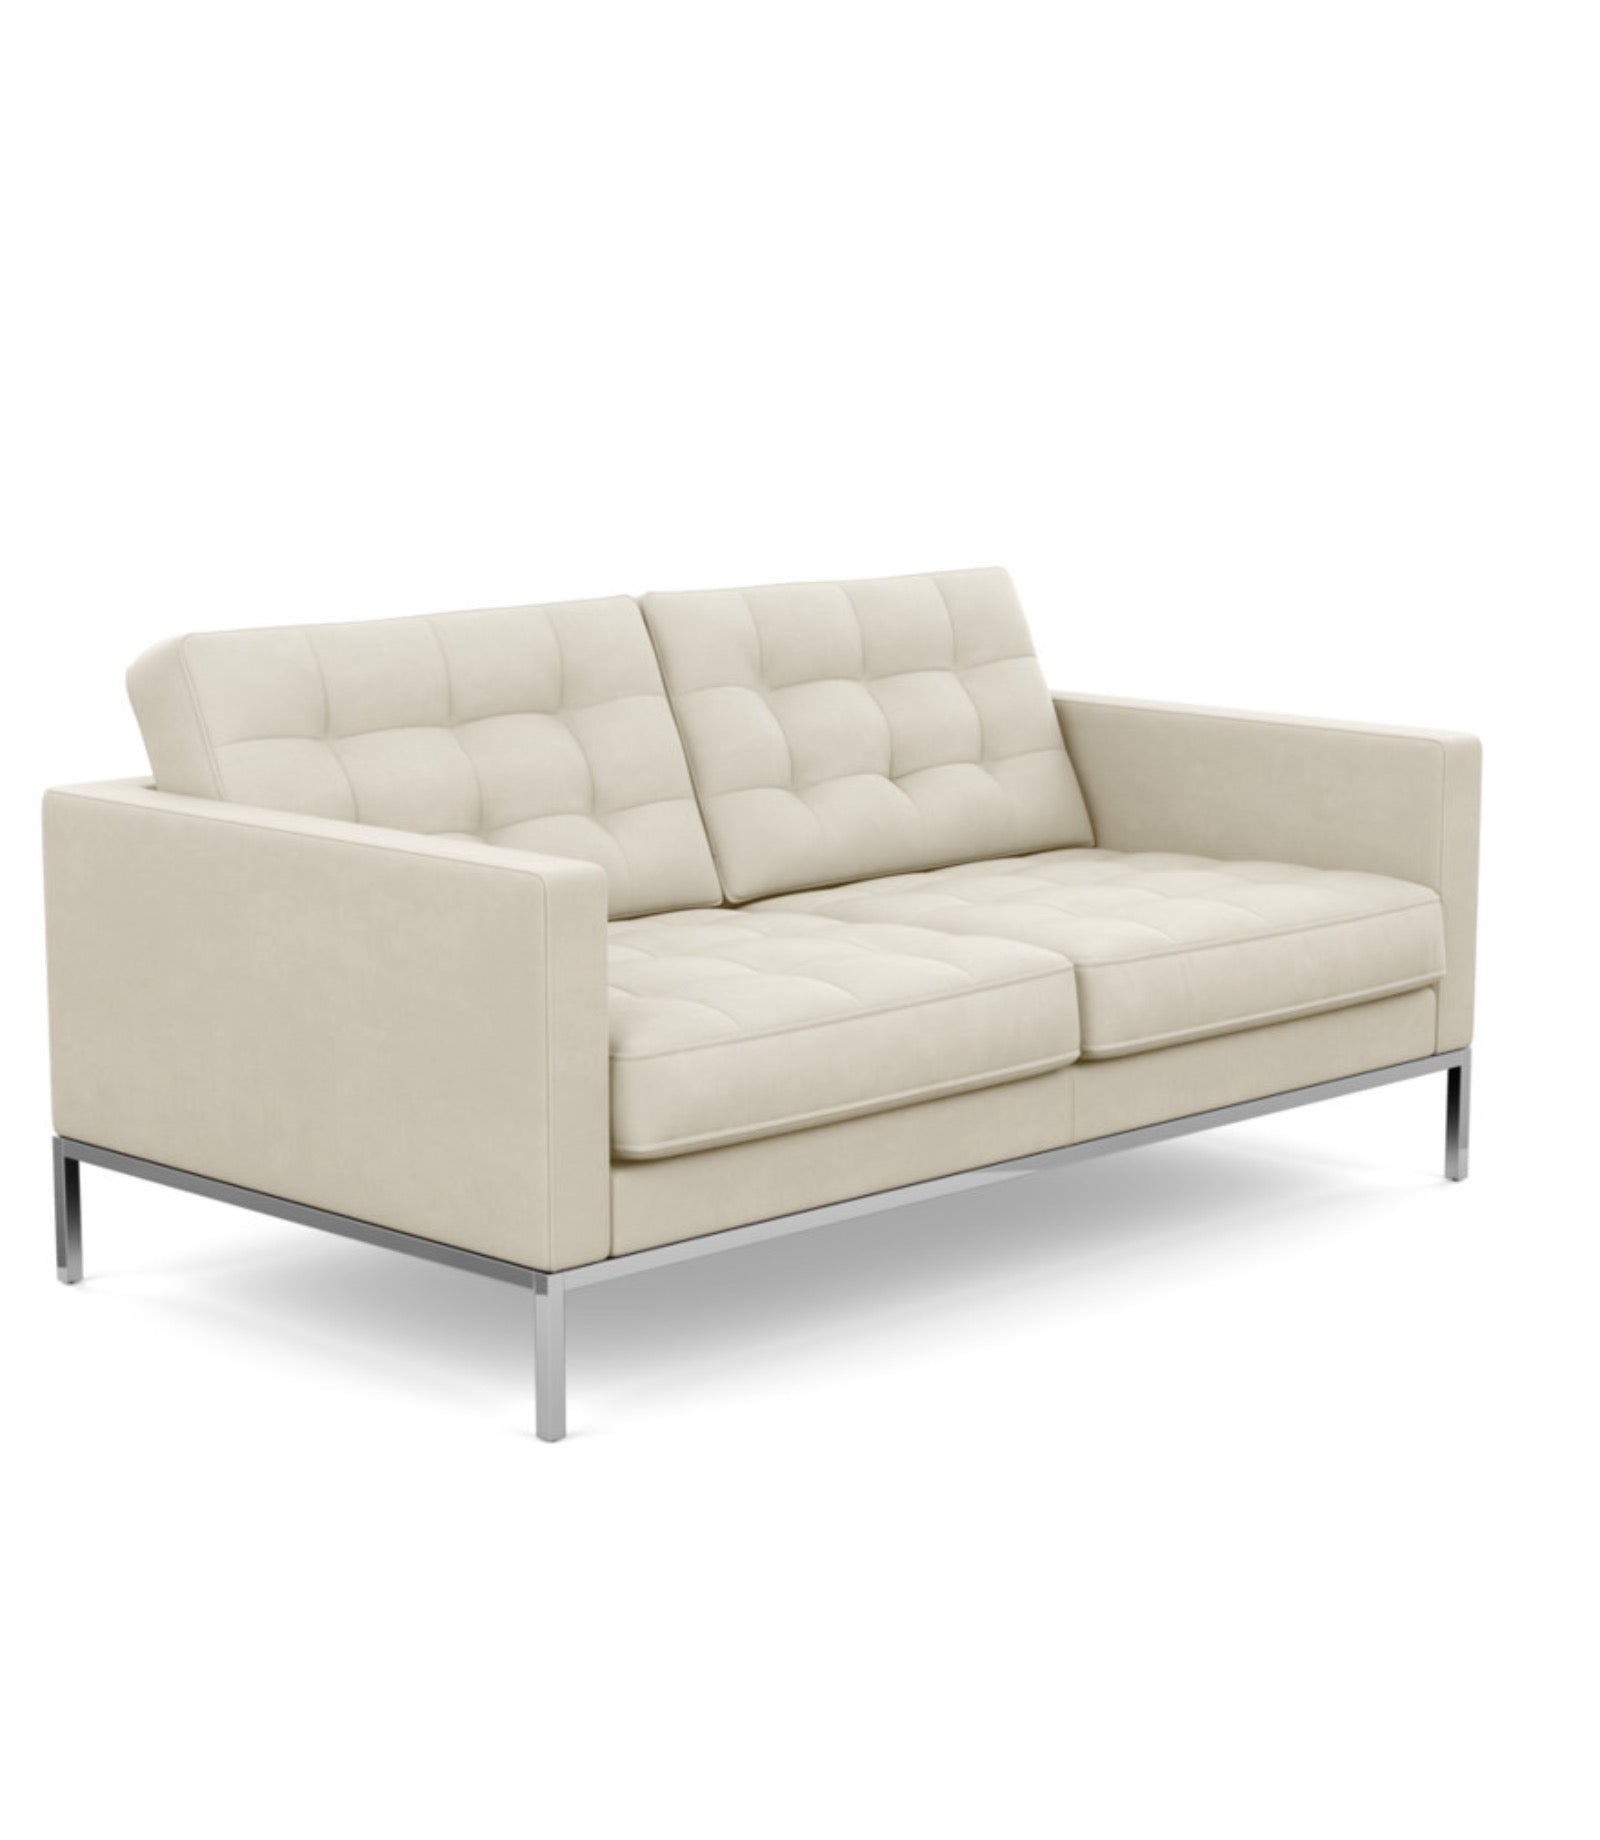 Florence Knoll™ Settee Relax